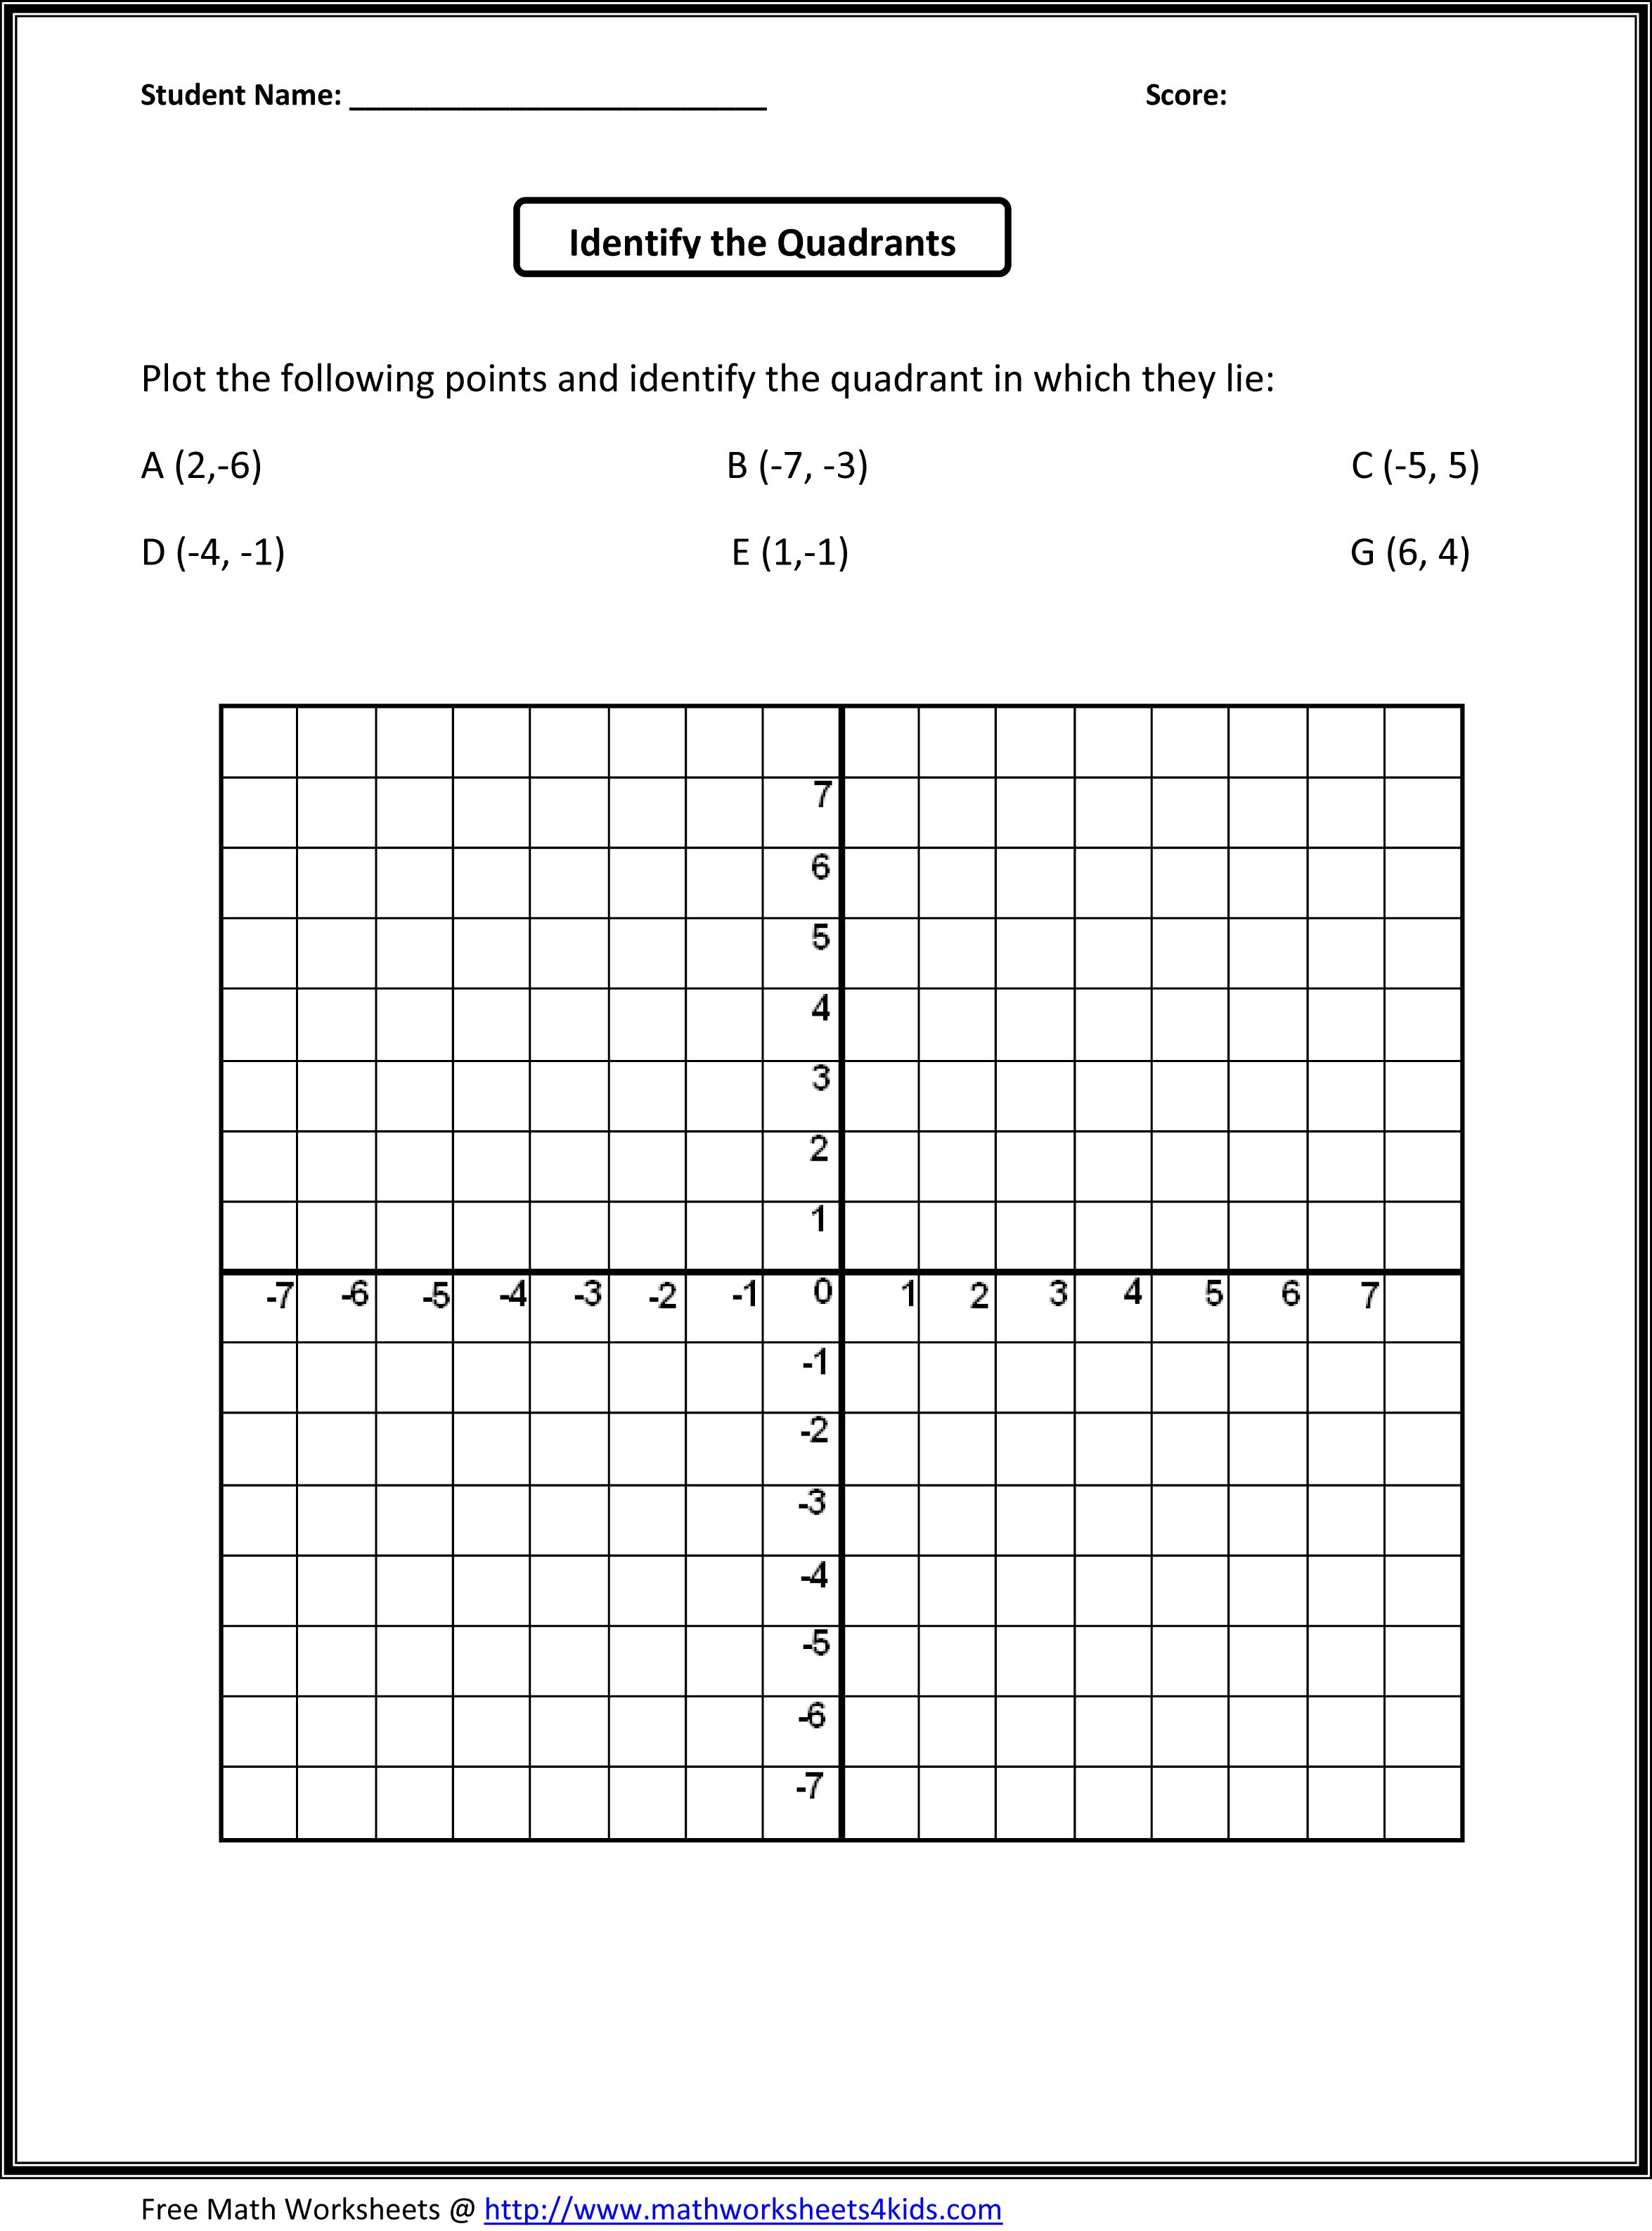 math worksheet : 1000 images about summer school on pinterest  5th grade math  : Fifth Grade Decimal Worksheets